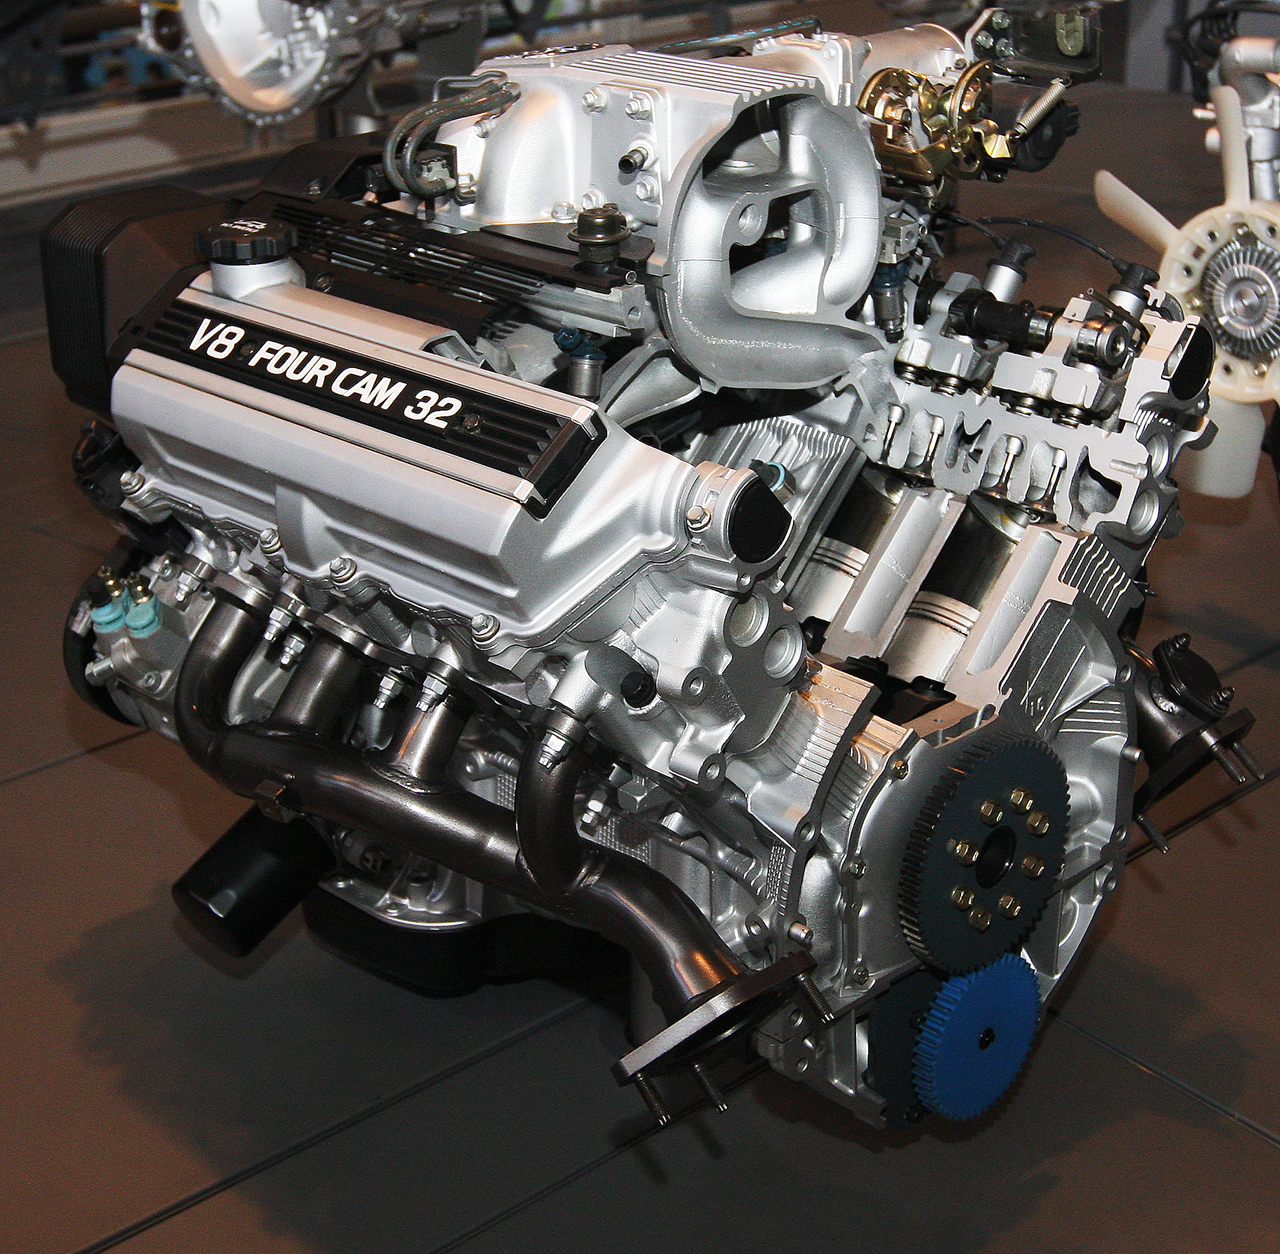 file 1989 toyota 1uz-fe type engine rear jpg